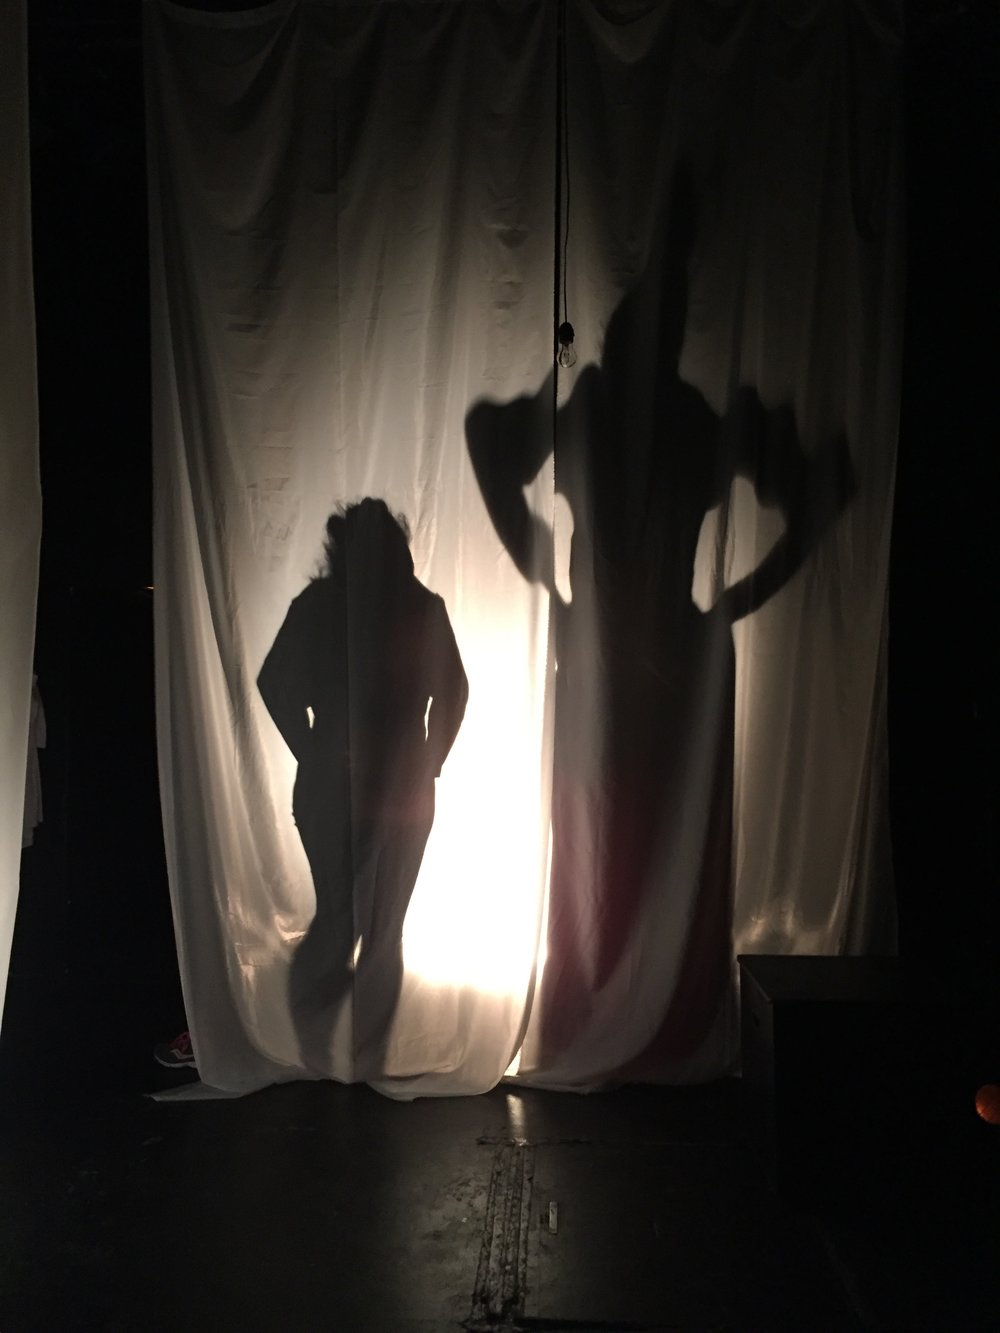 #curtain #silhouettes #test #davidandgoliath